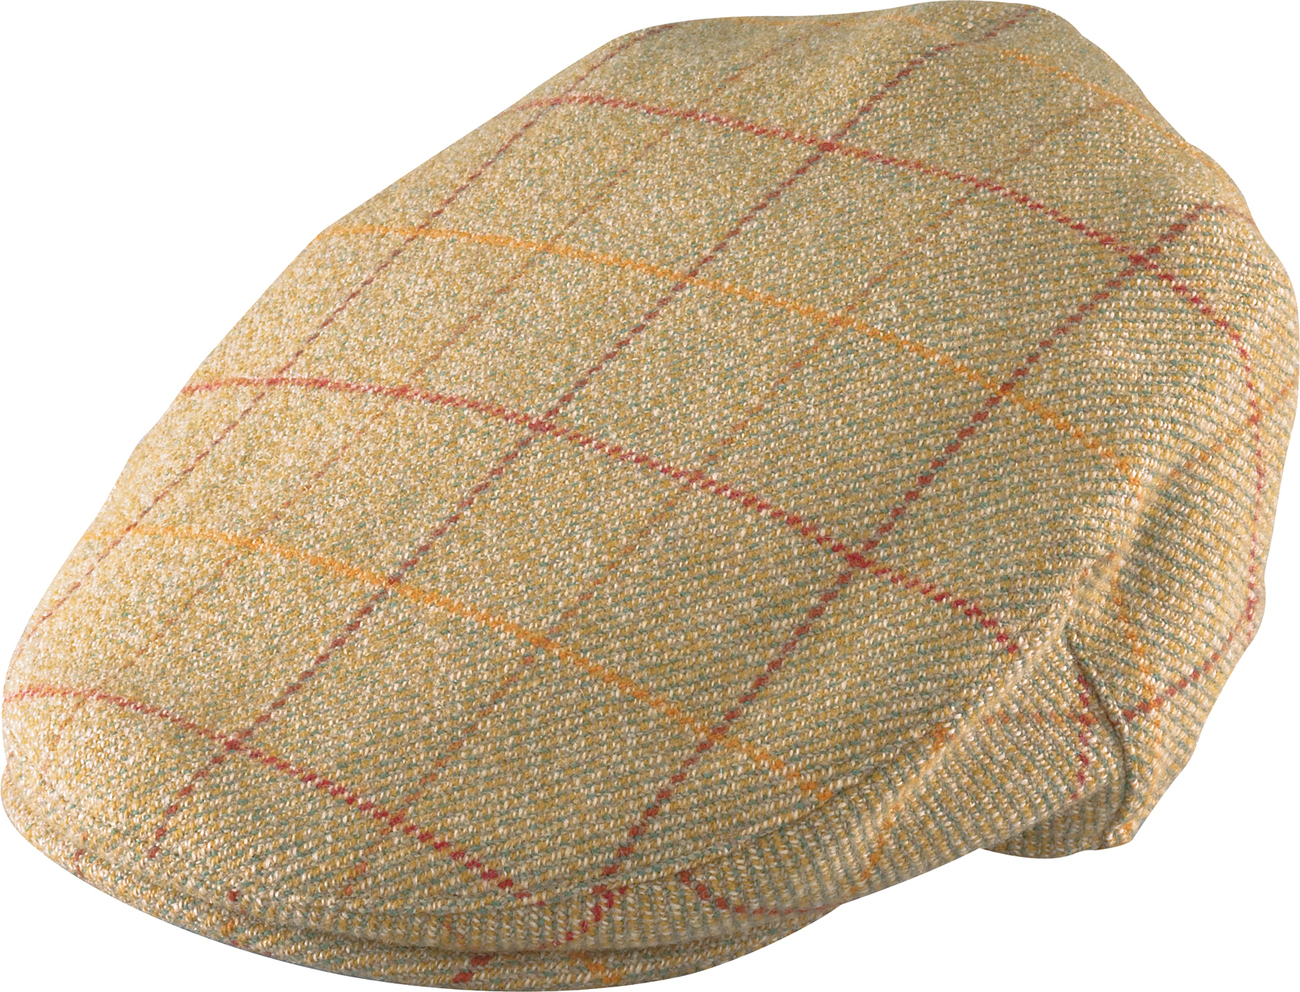 Henschel Waterproofed Wool Plaid 5 Point Ivy League Cap Satin Lined Olive Loden